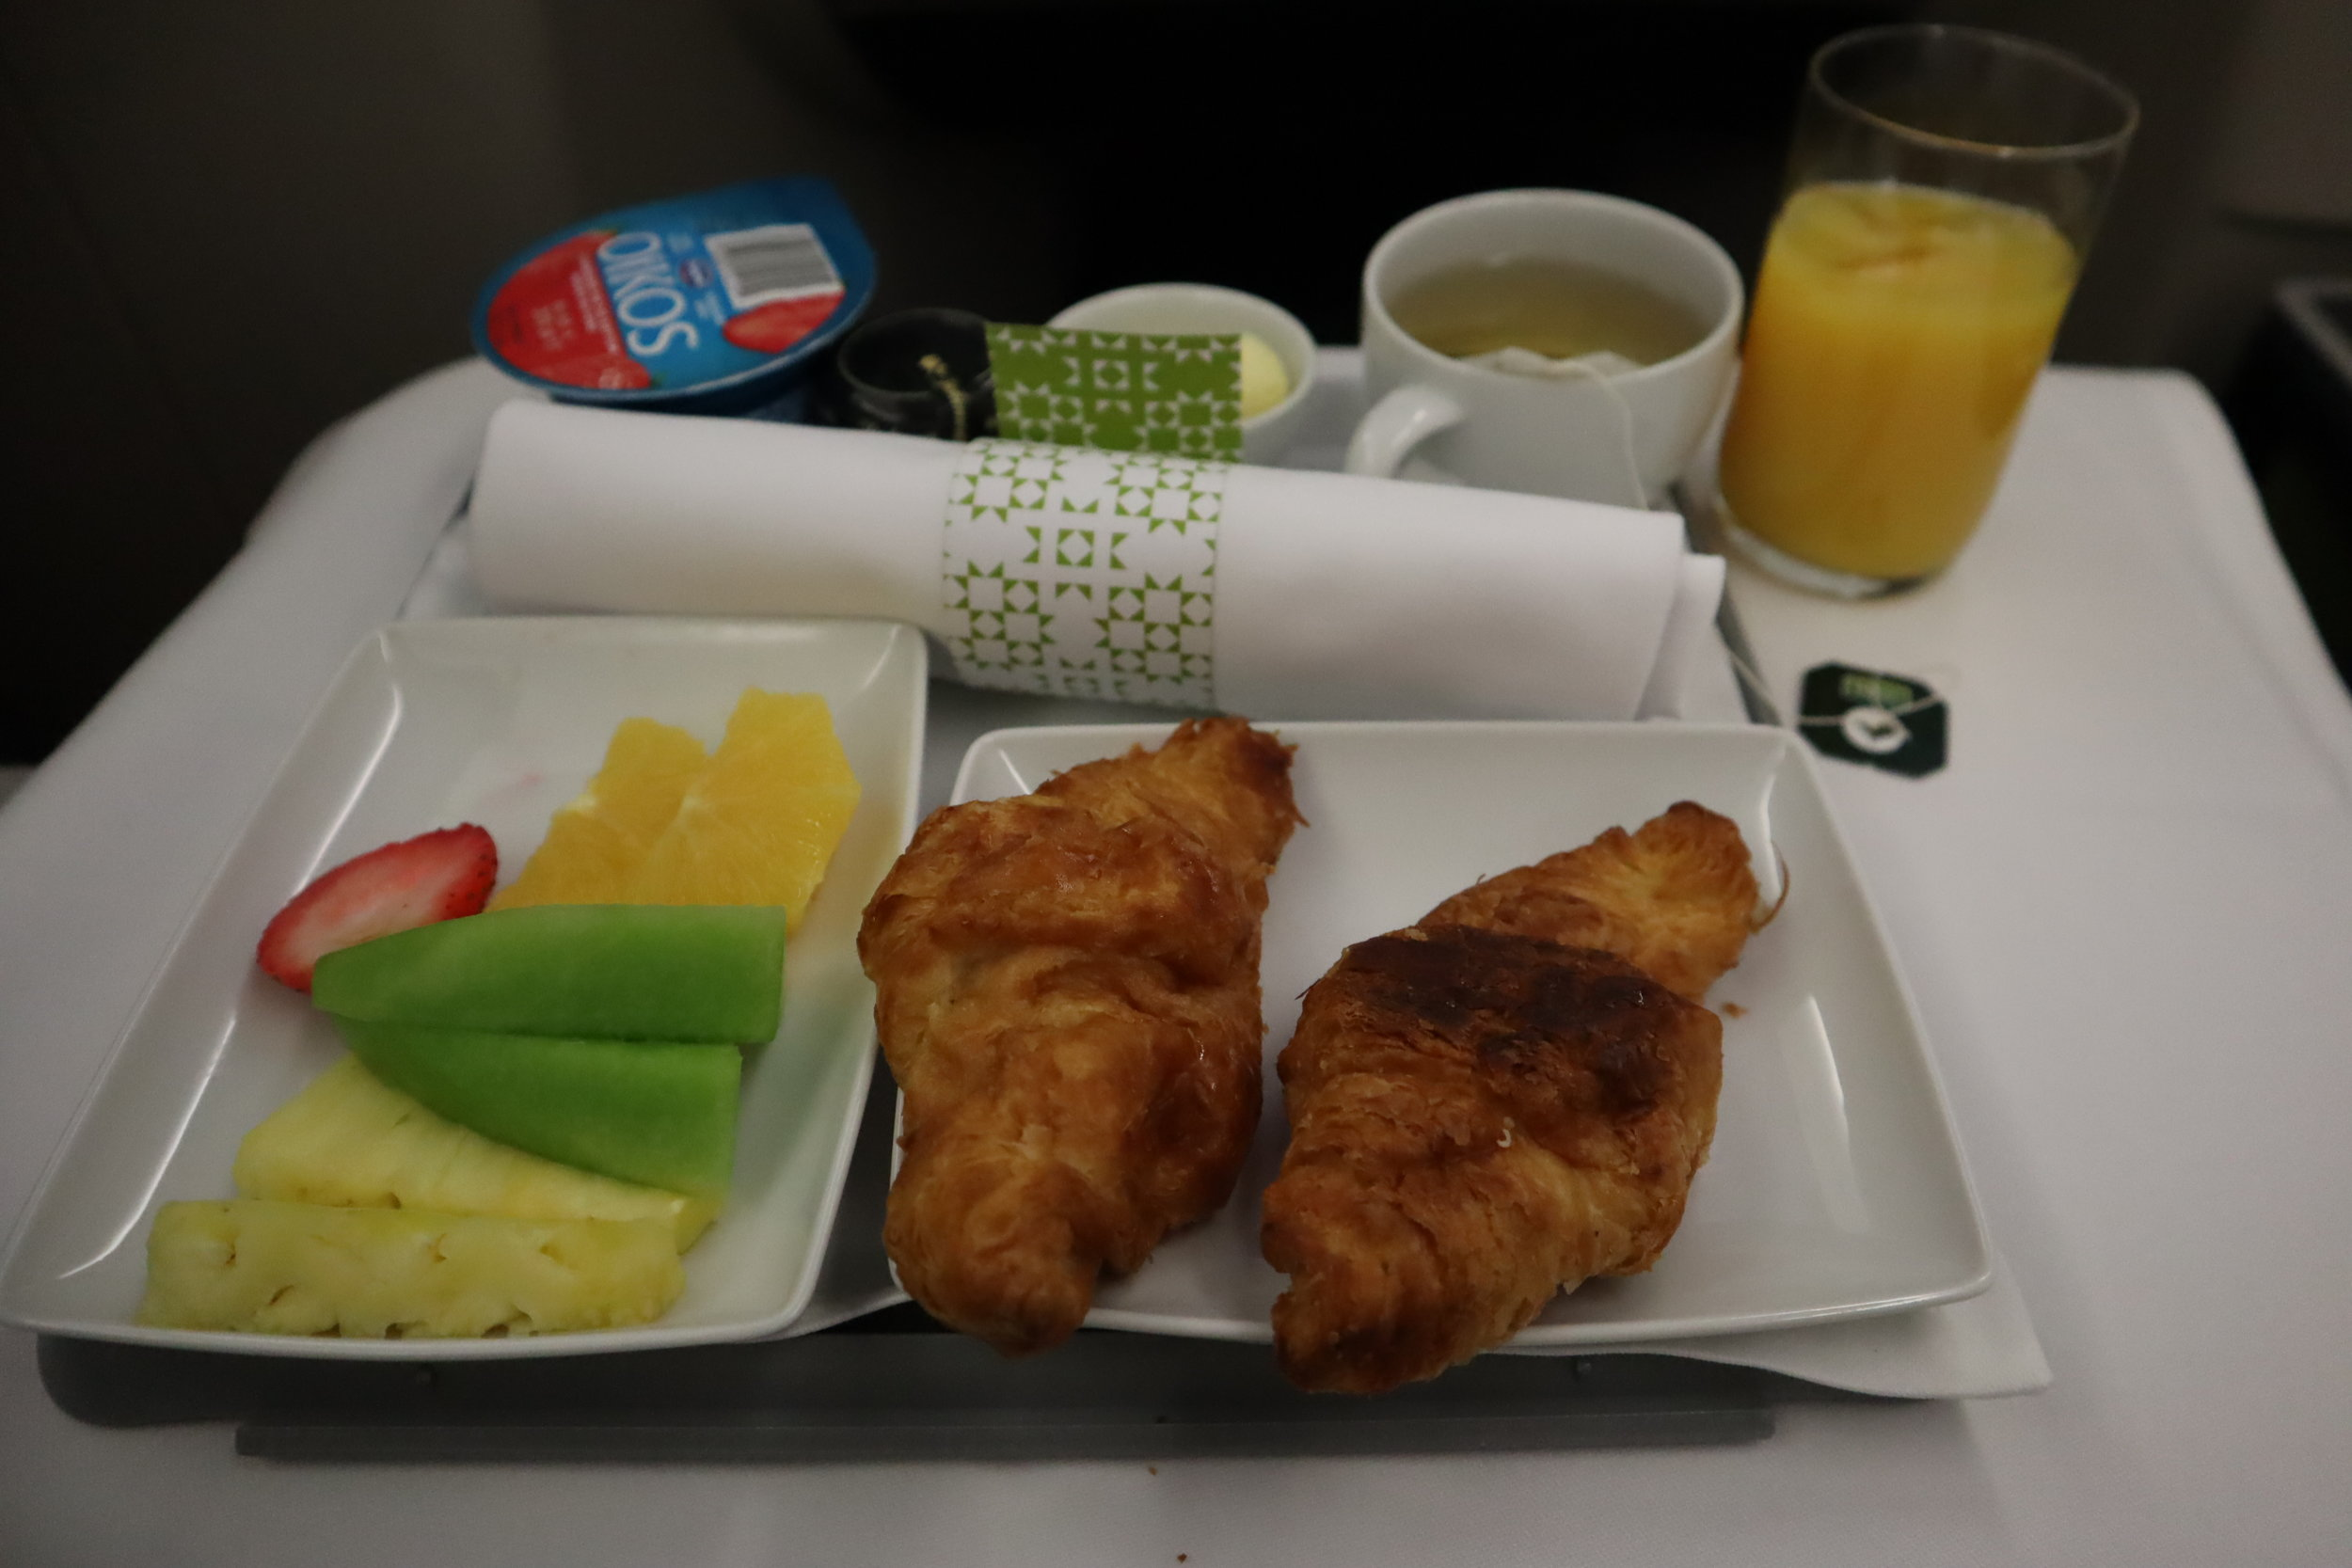 TAP Air Portugal business class – Pre-arrival meal